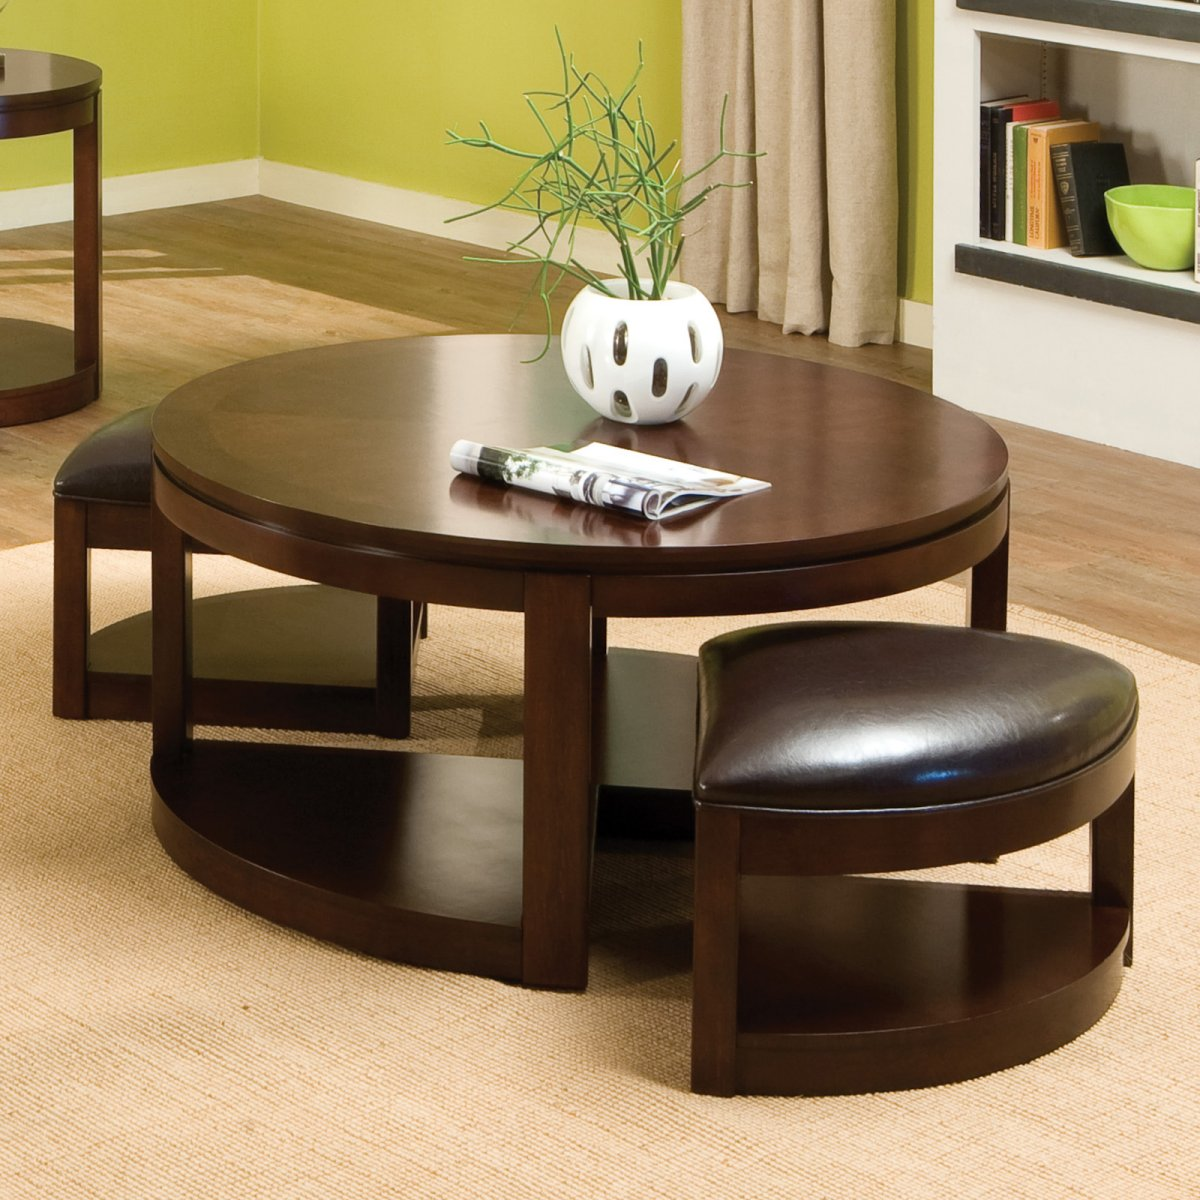 Living Room Table With Stools: The Round Coffee Tables With Storage